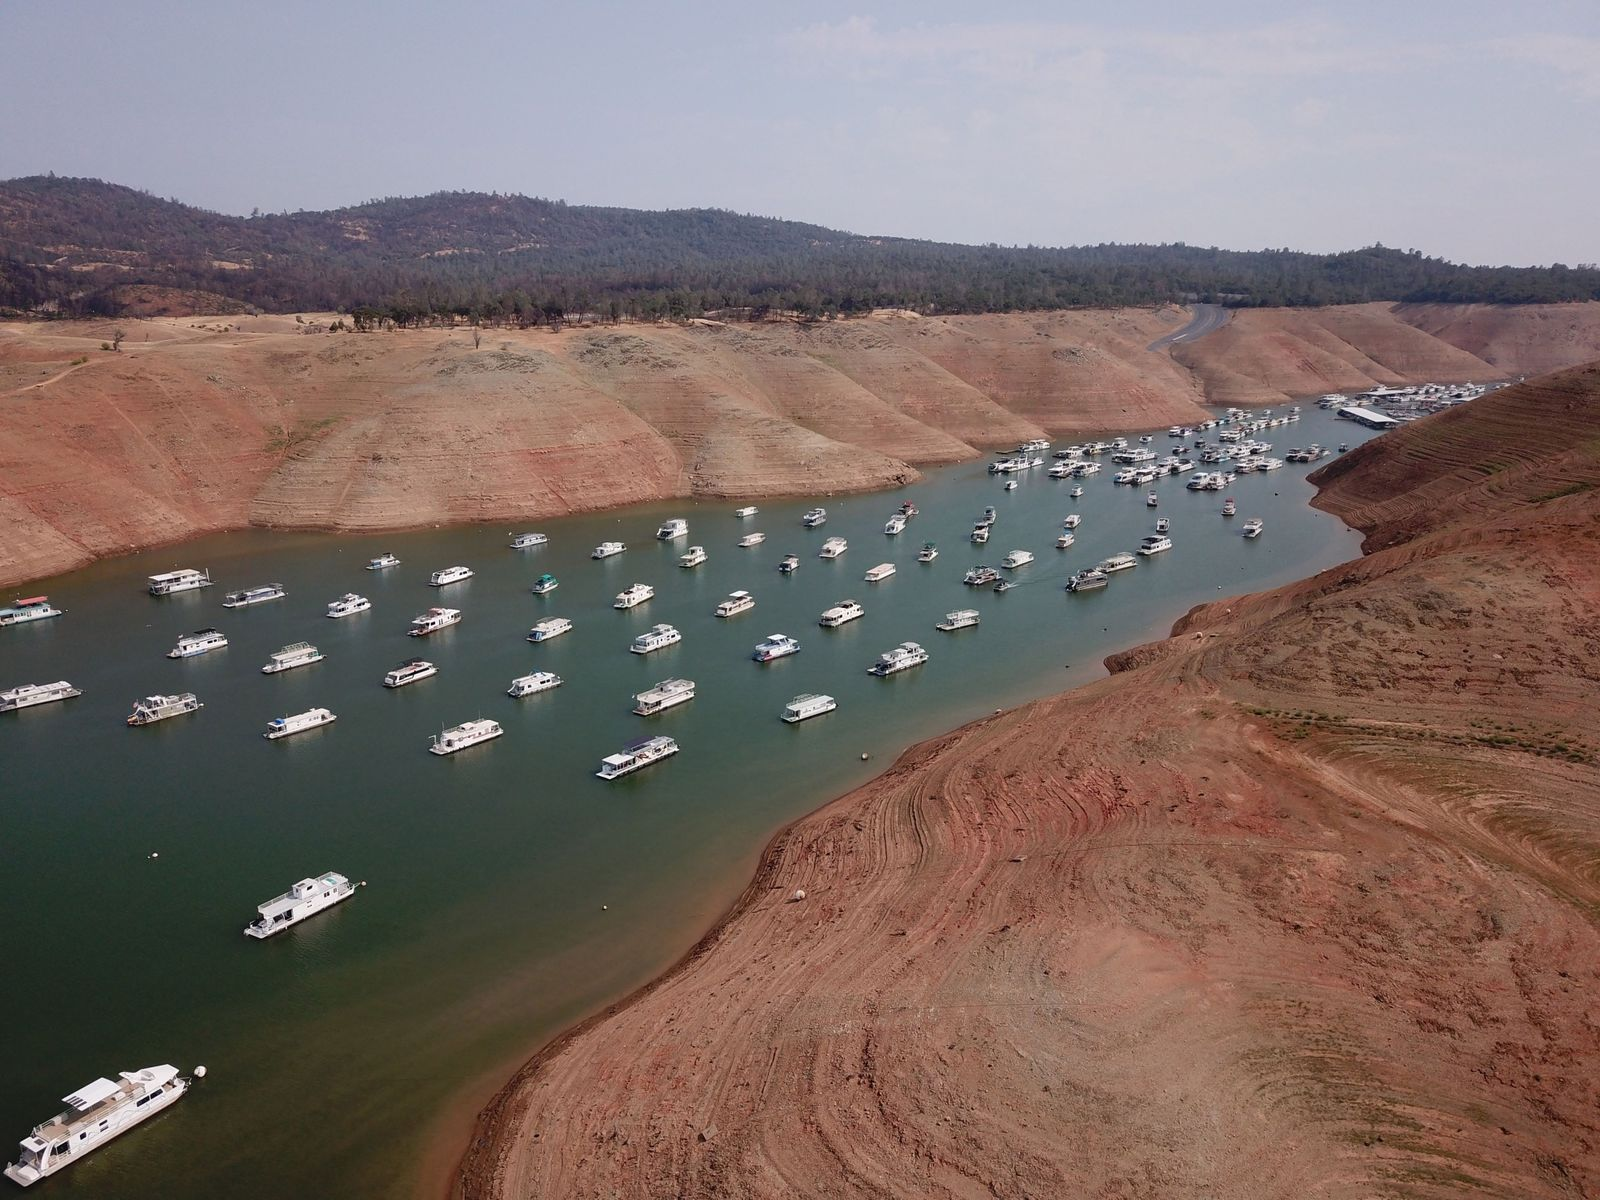 US-CLIMATE-DROUGHT